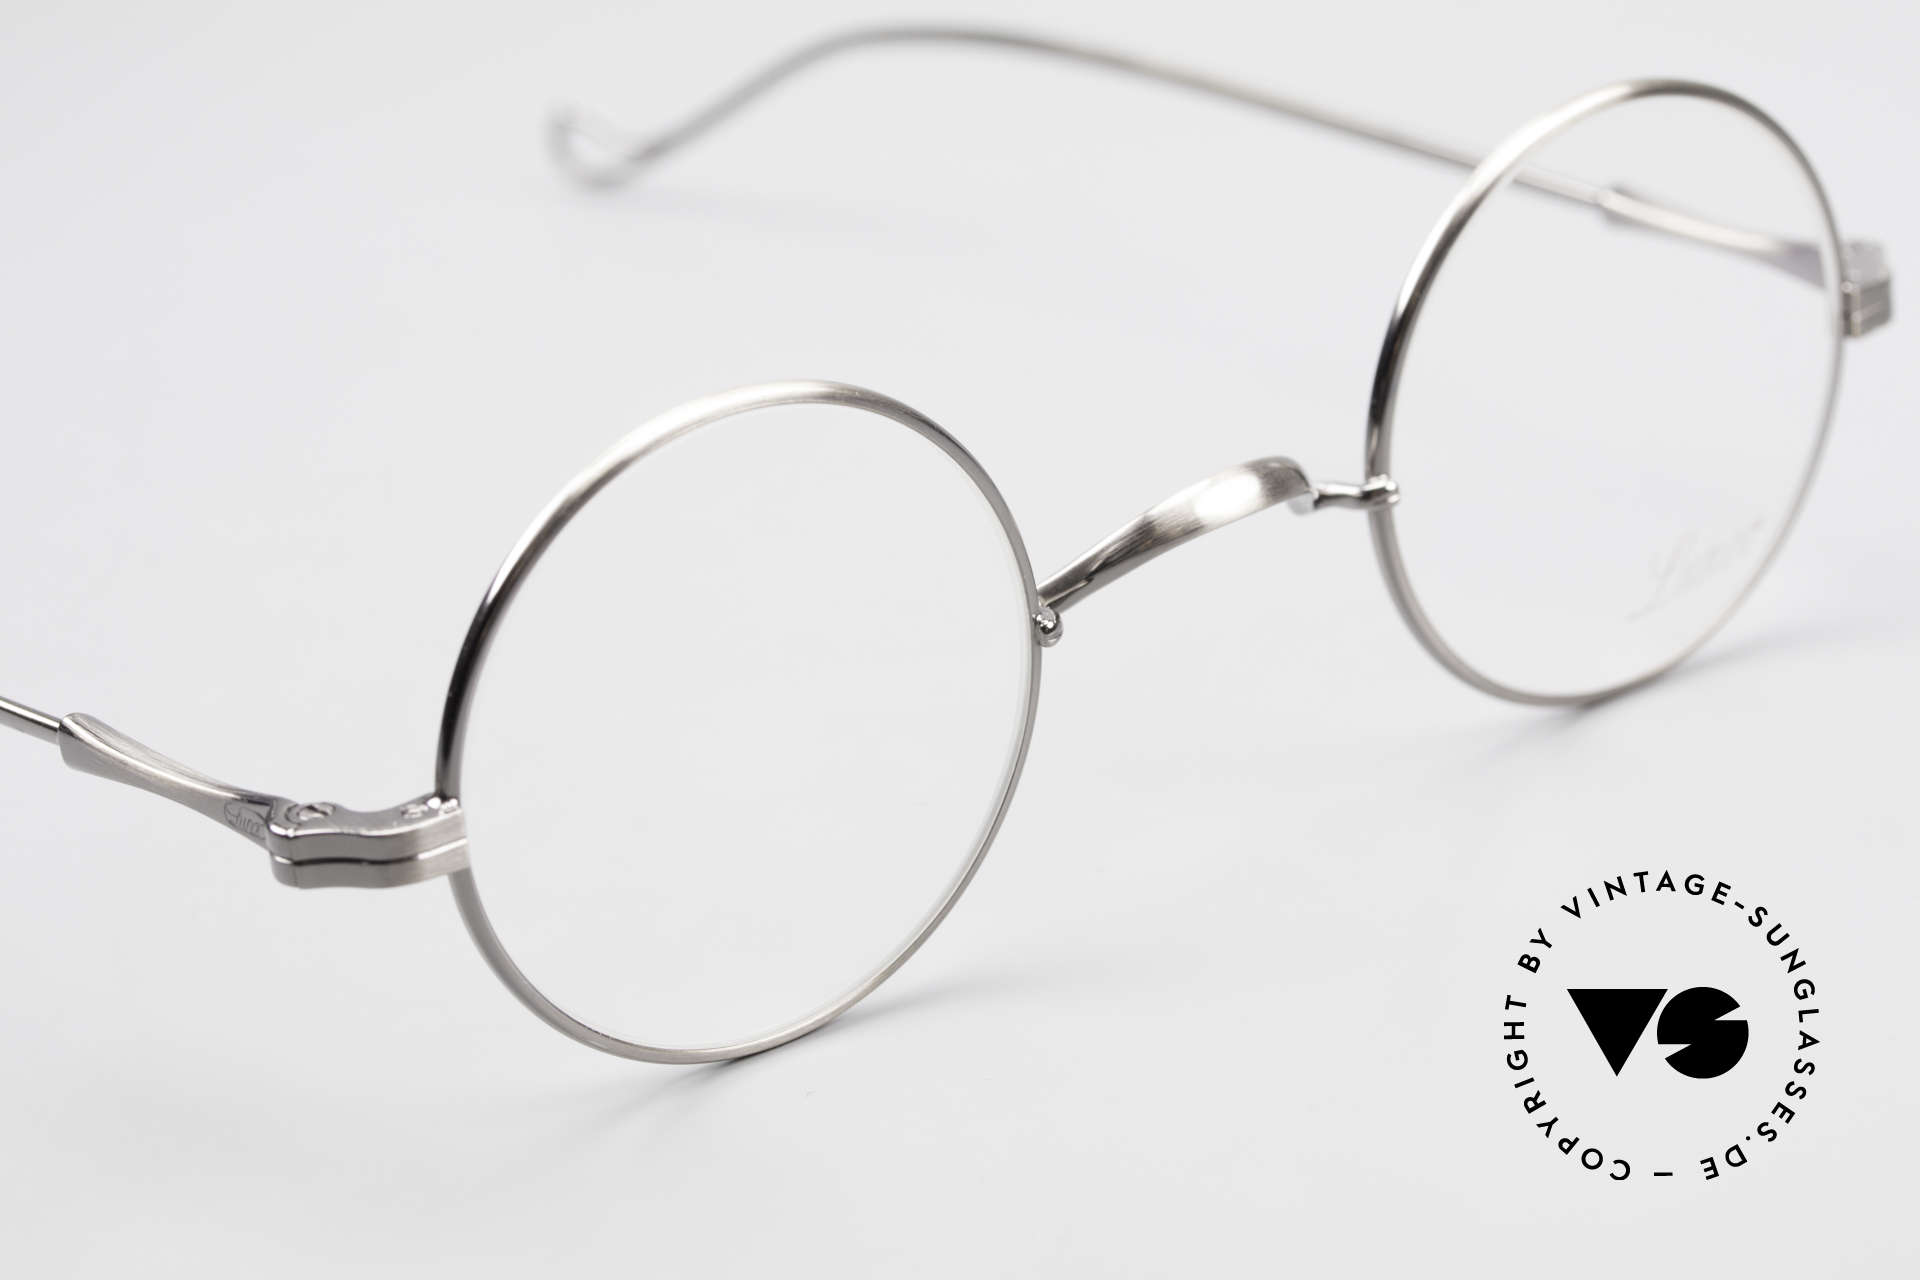 Lunor II 12 Small Round Luxury Glasses, NO RETRO EYEGLASSES; but a luxury vintage Original, Made for Men and Women